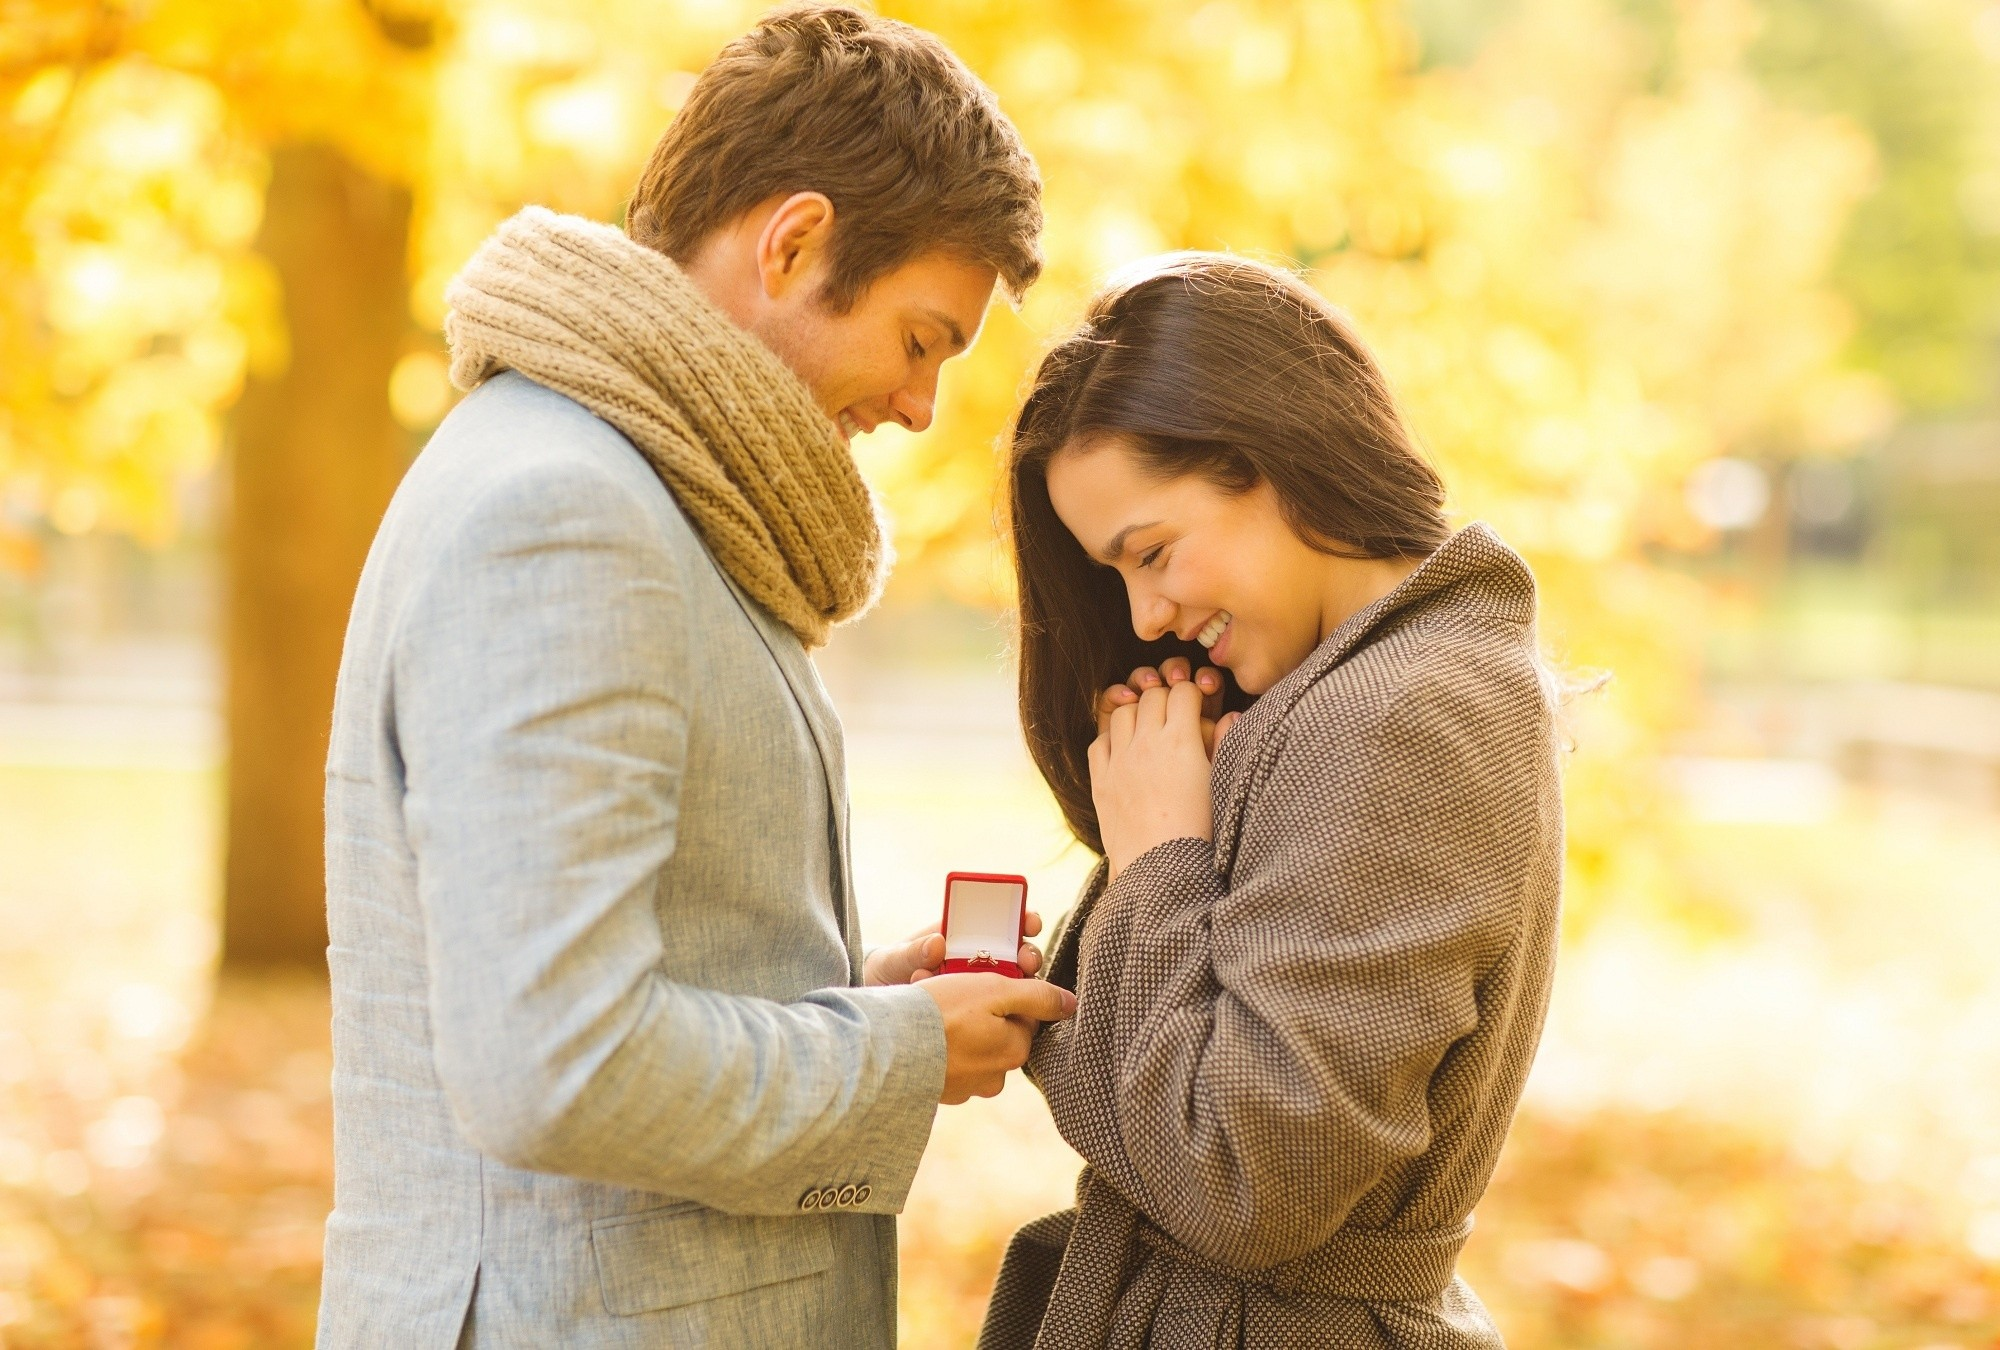 engagement ring, love proposal, holidays, love, couple, relationship and dating concept - romantic man proposing to a woman in the autumn park